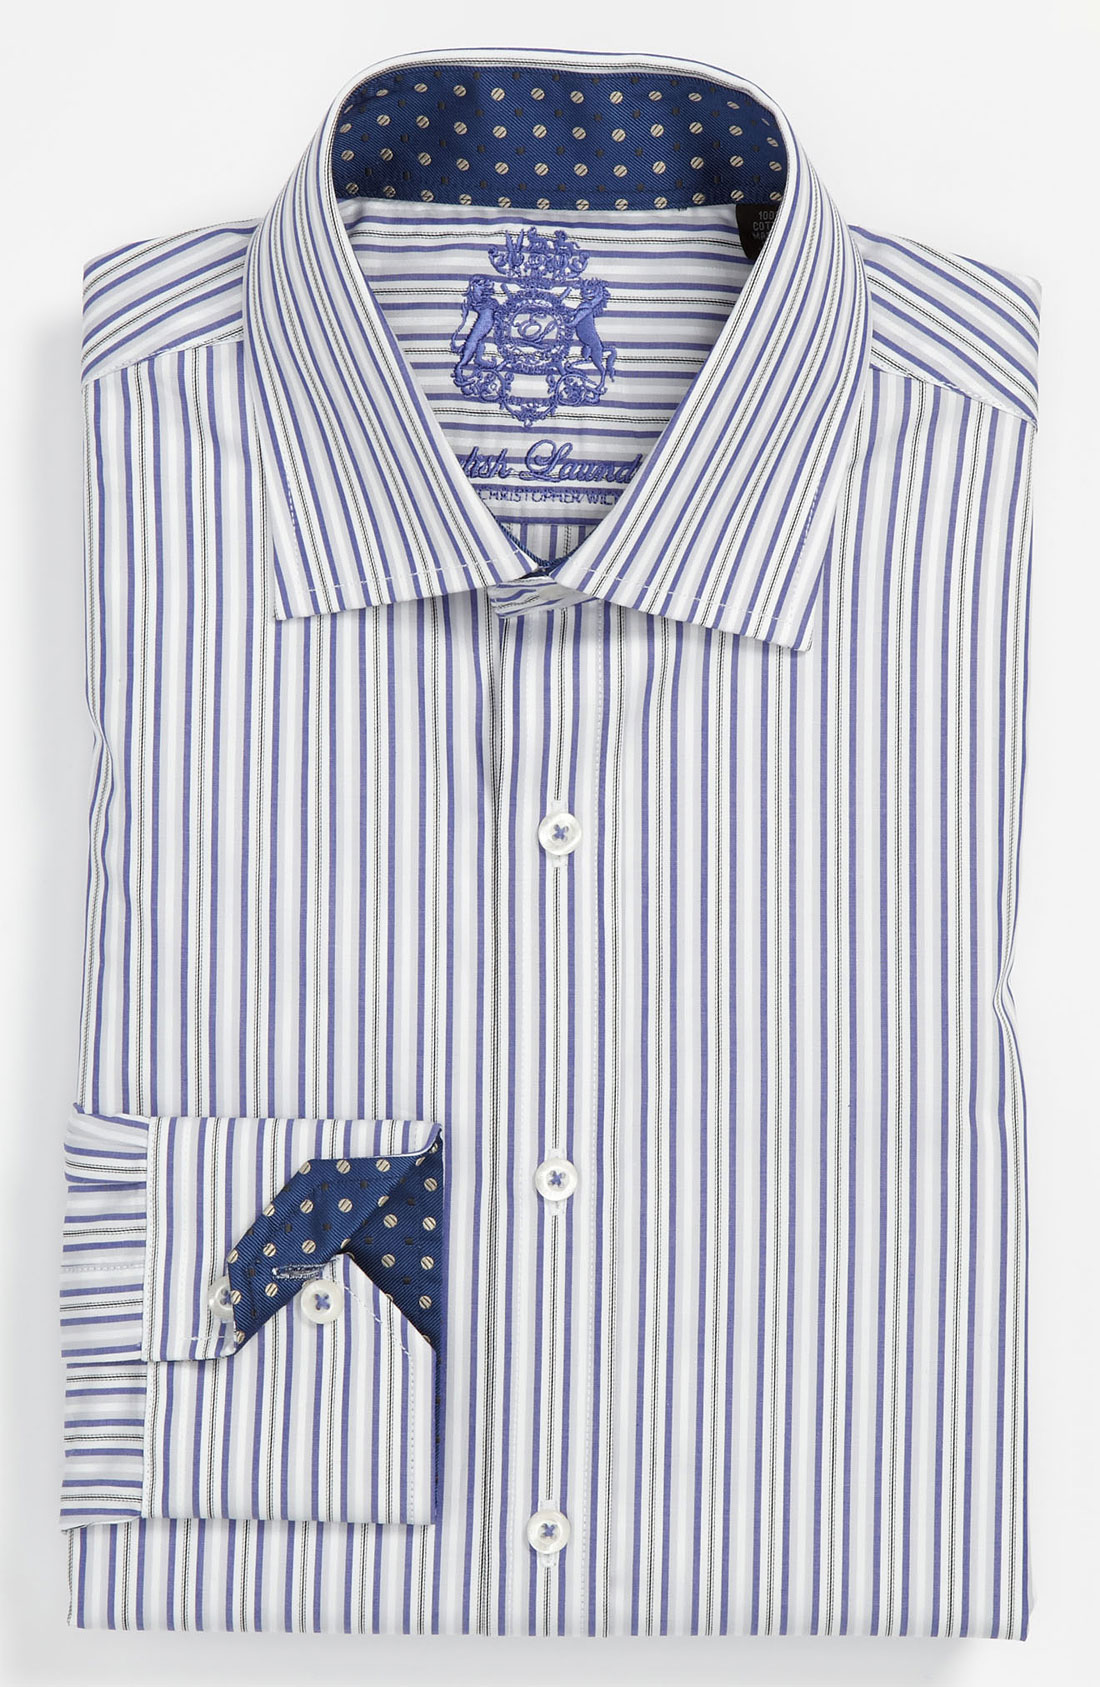 English Laundry Trim Fit Dress Shirt In Blue For Men Blue